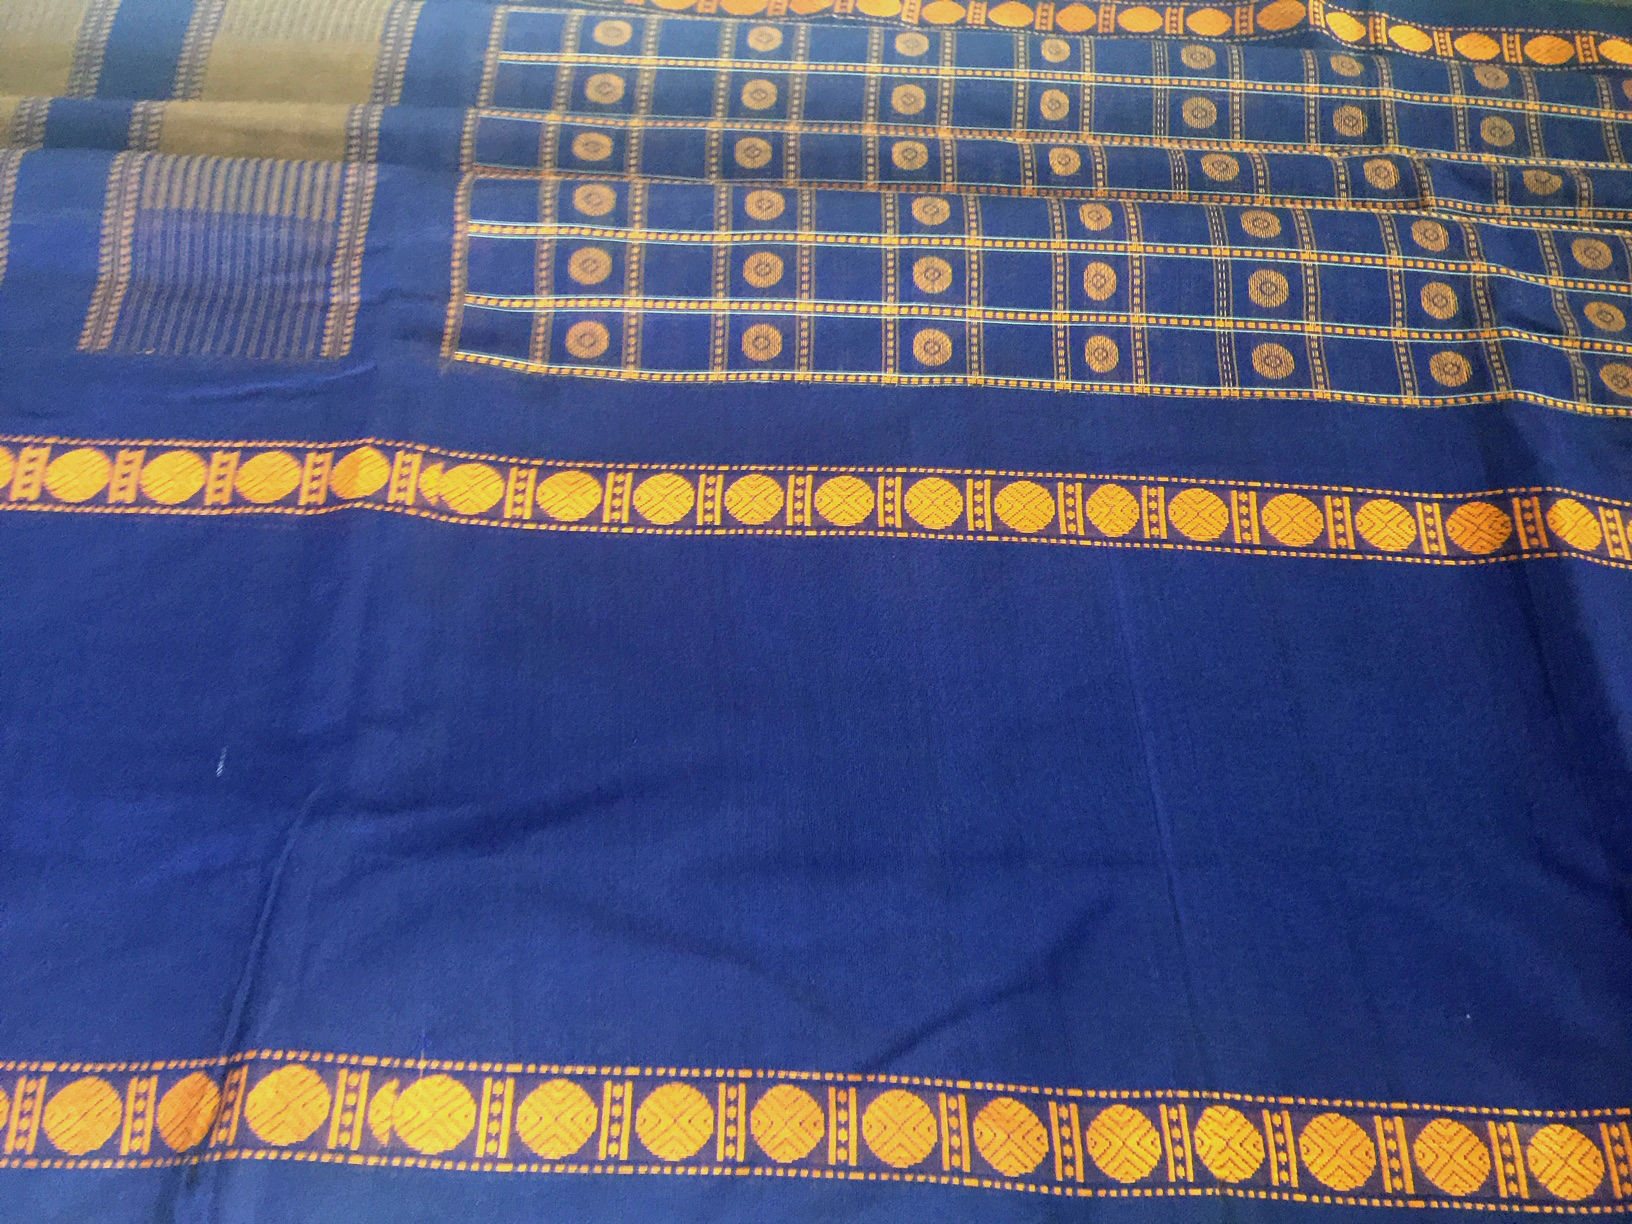 Sale! 20% Off! Kanchipuram Ayirum Butta Navy